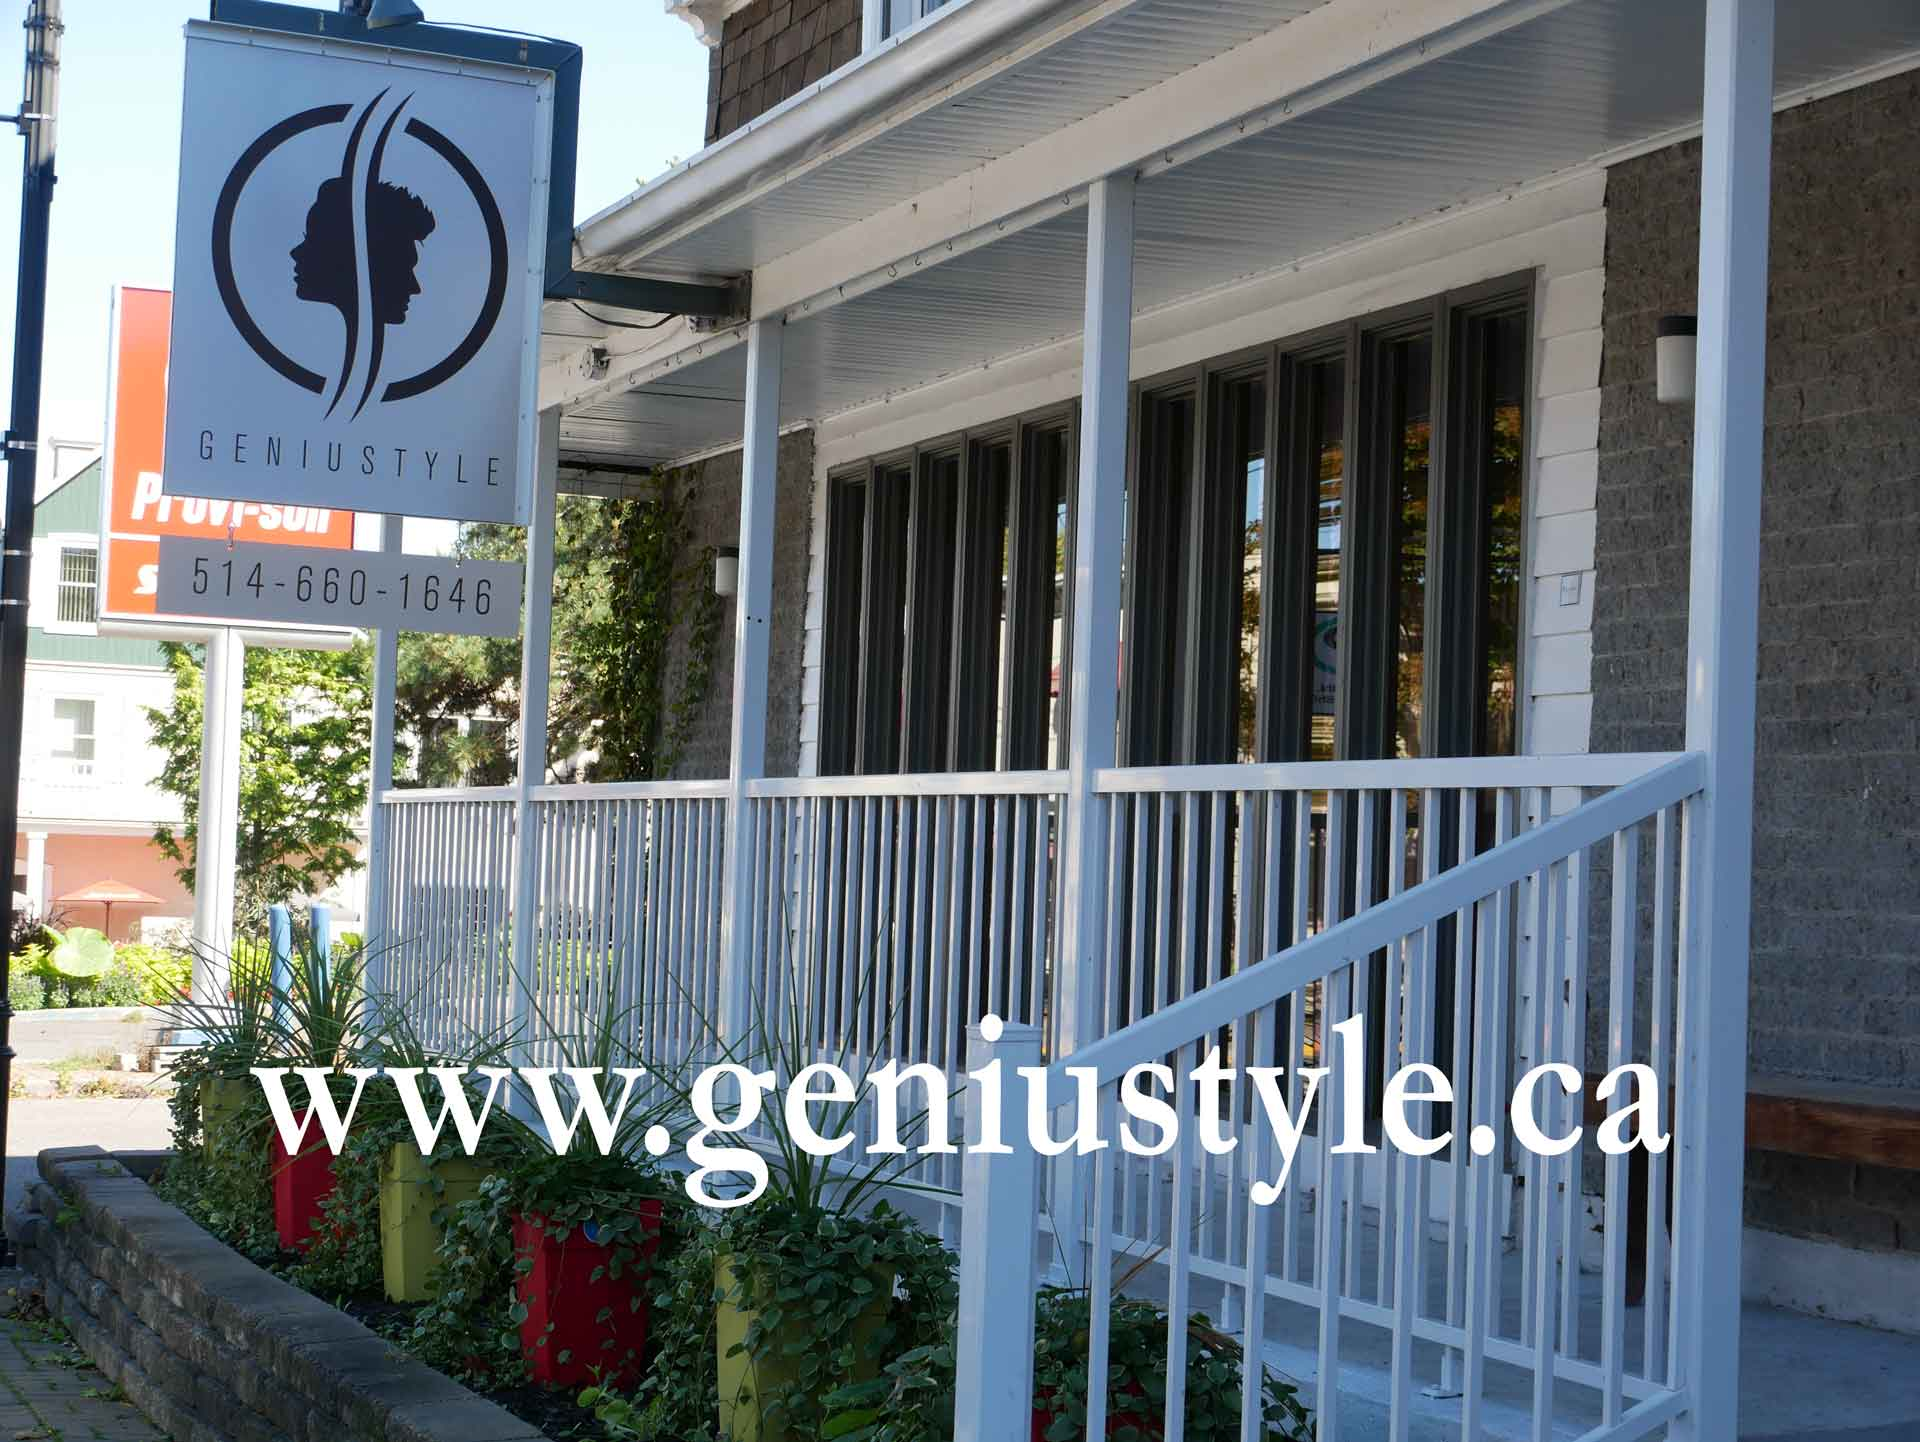 Welcome-to-geniuStyle-website-post